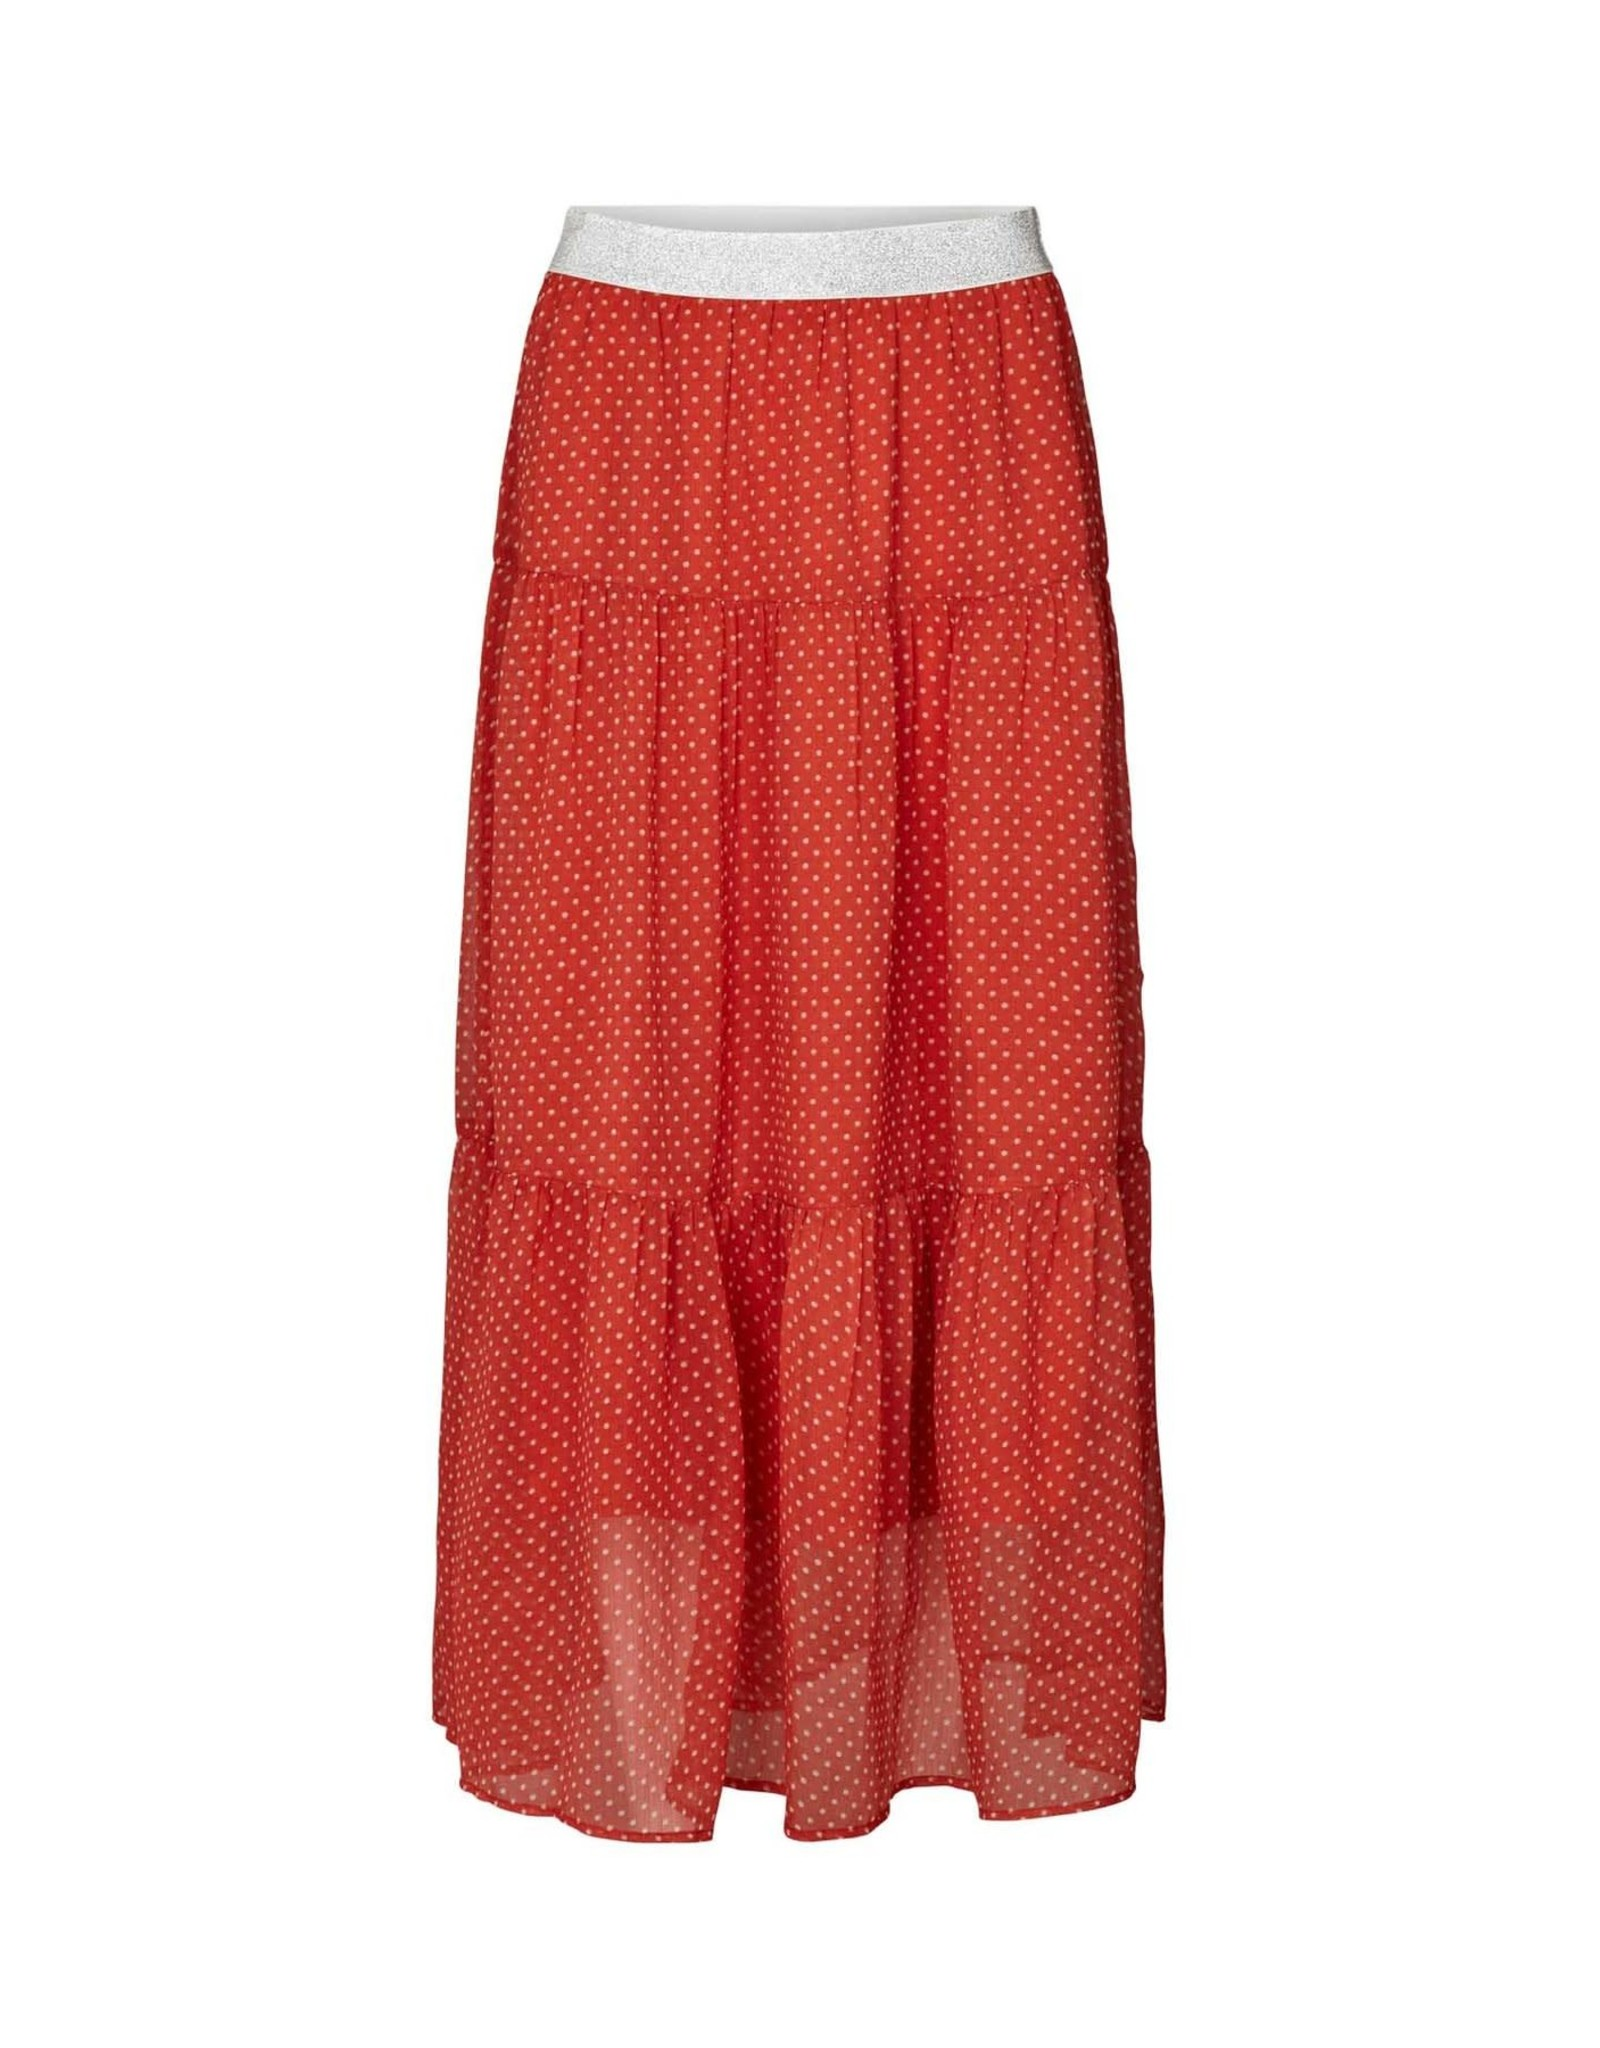 Lolly's Laundry Bonny Skirt Rust